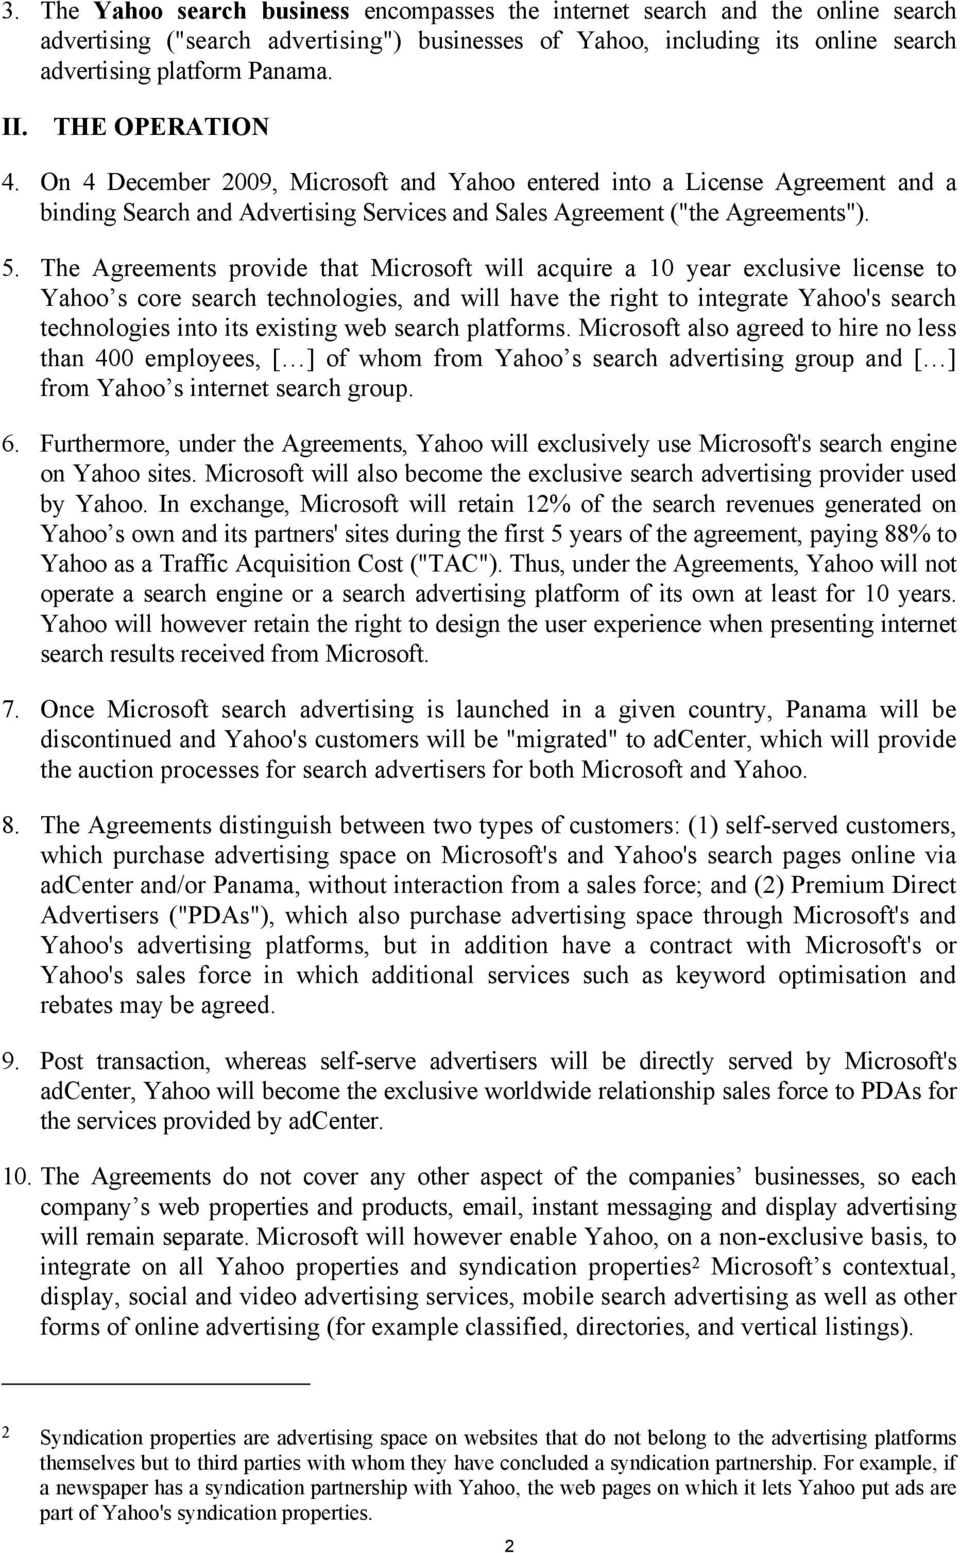 The Agreements provide that Microsoft will acquire a 10 year exclusive license to Yahoo s core search technologies, and will have the right to integrate Yahoo's search technologies into its existing